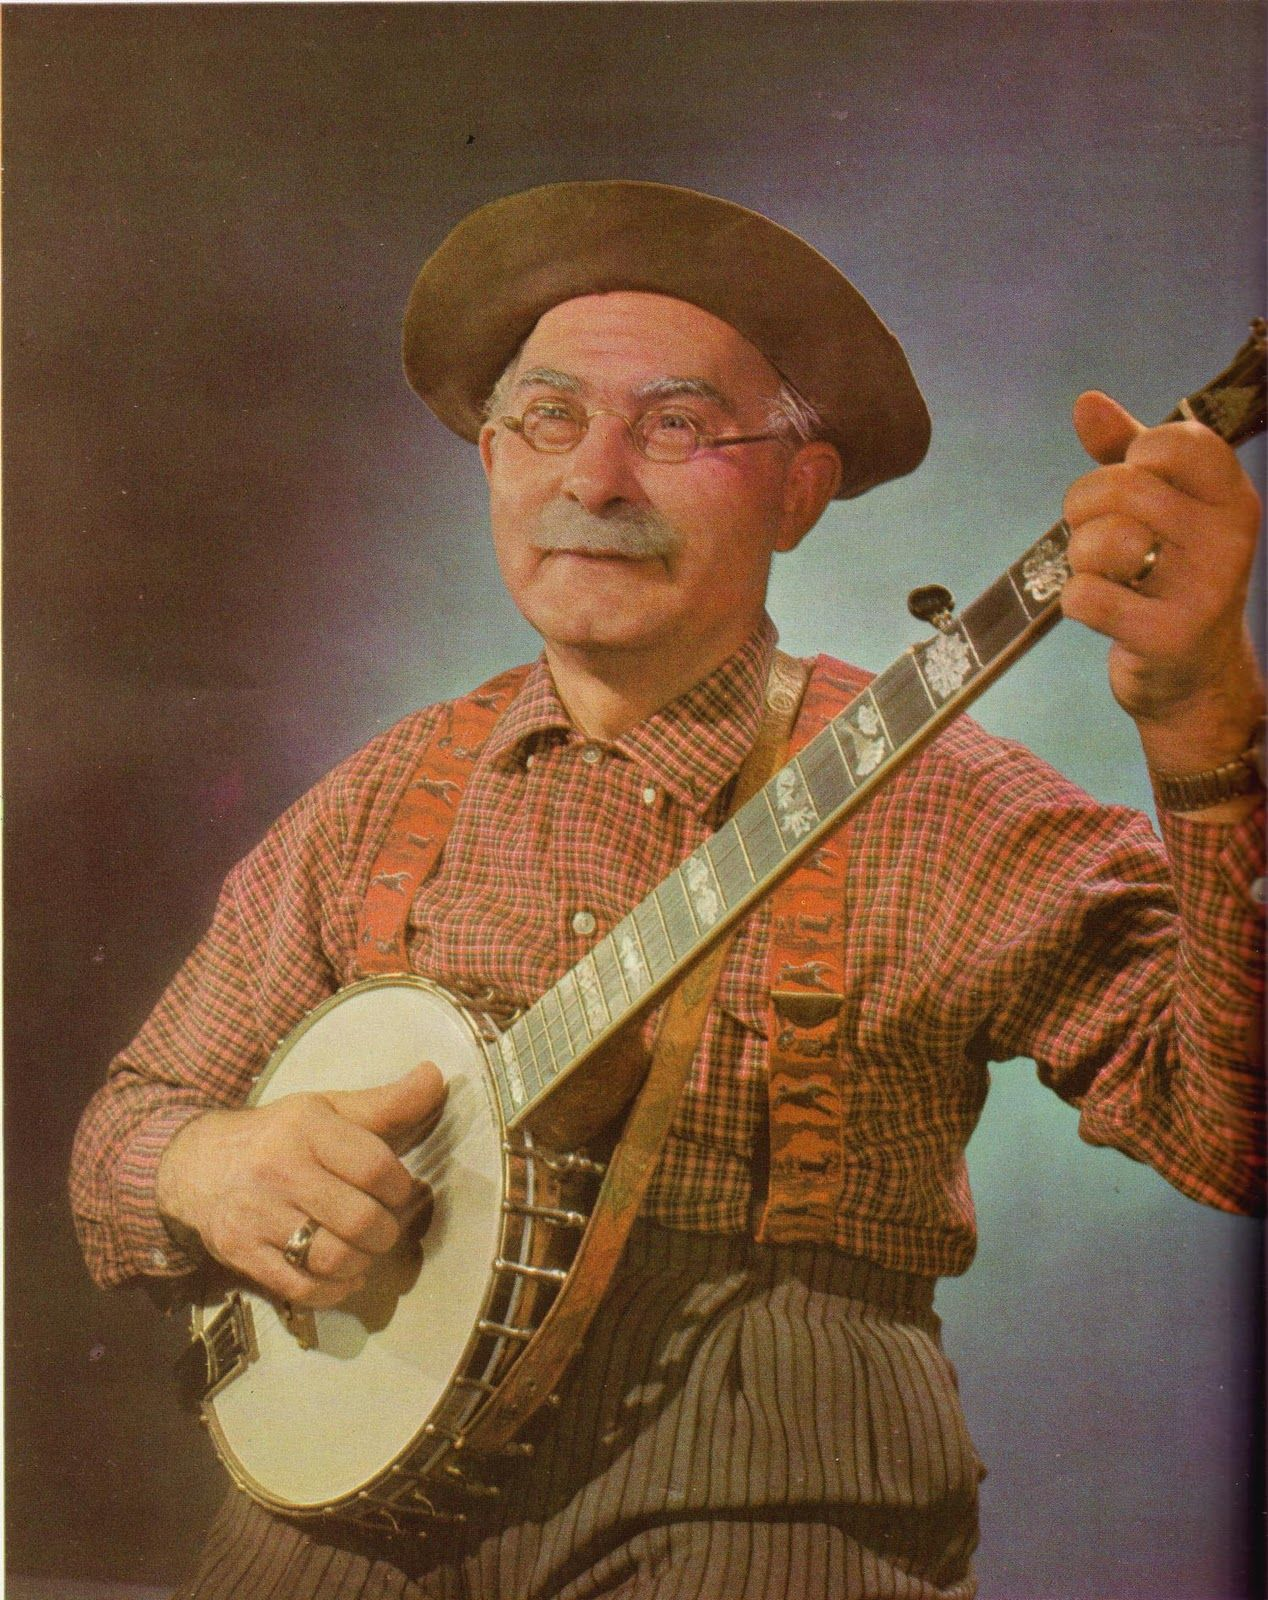 Grandpa Jones with his banjo <3 | Players and what they play in 2019